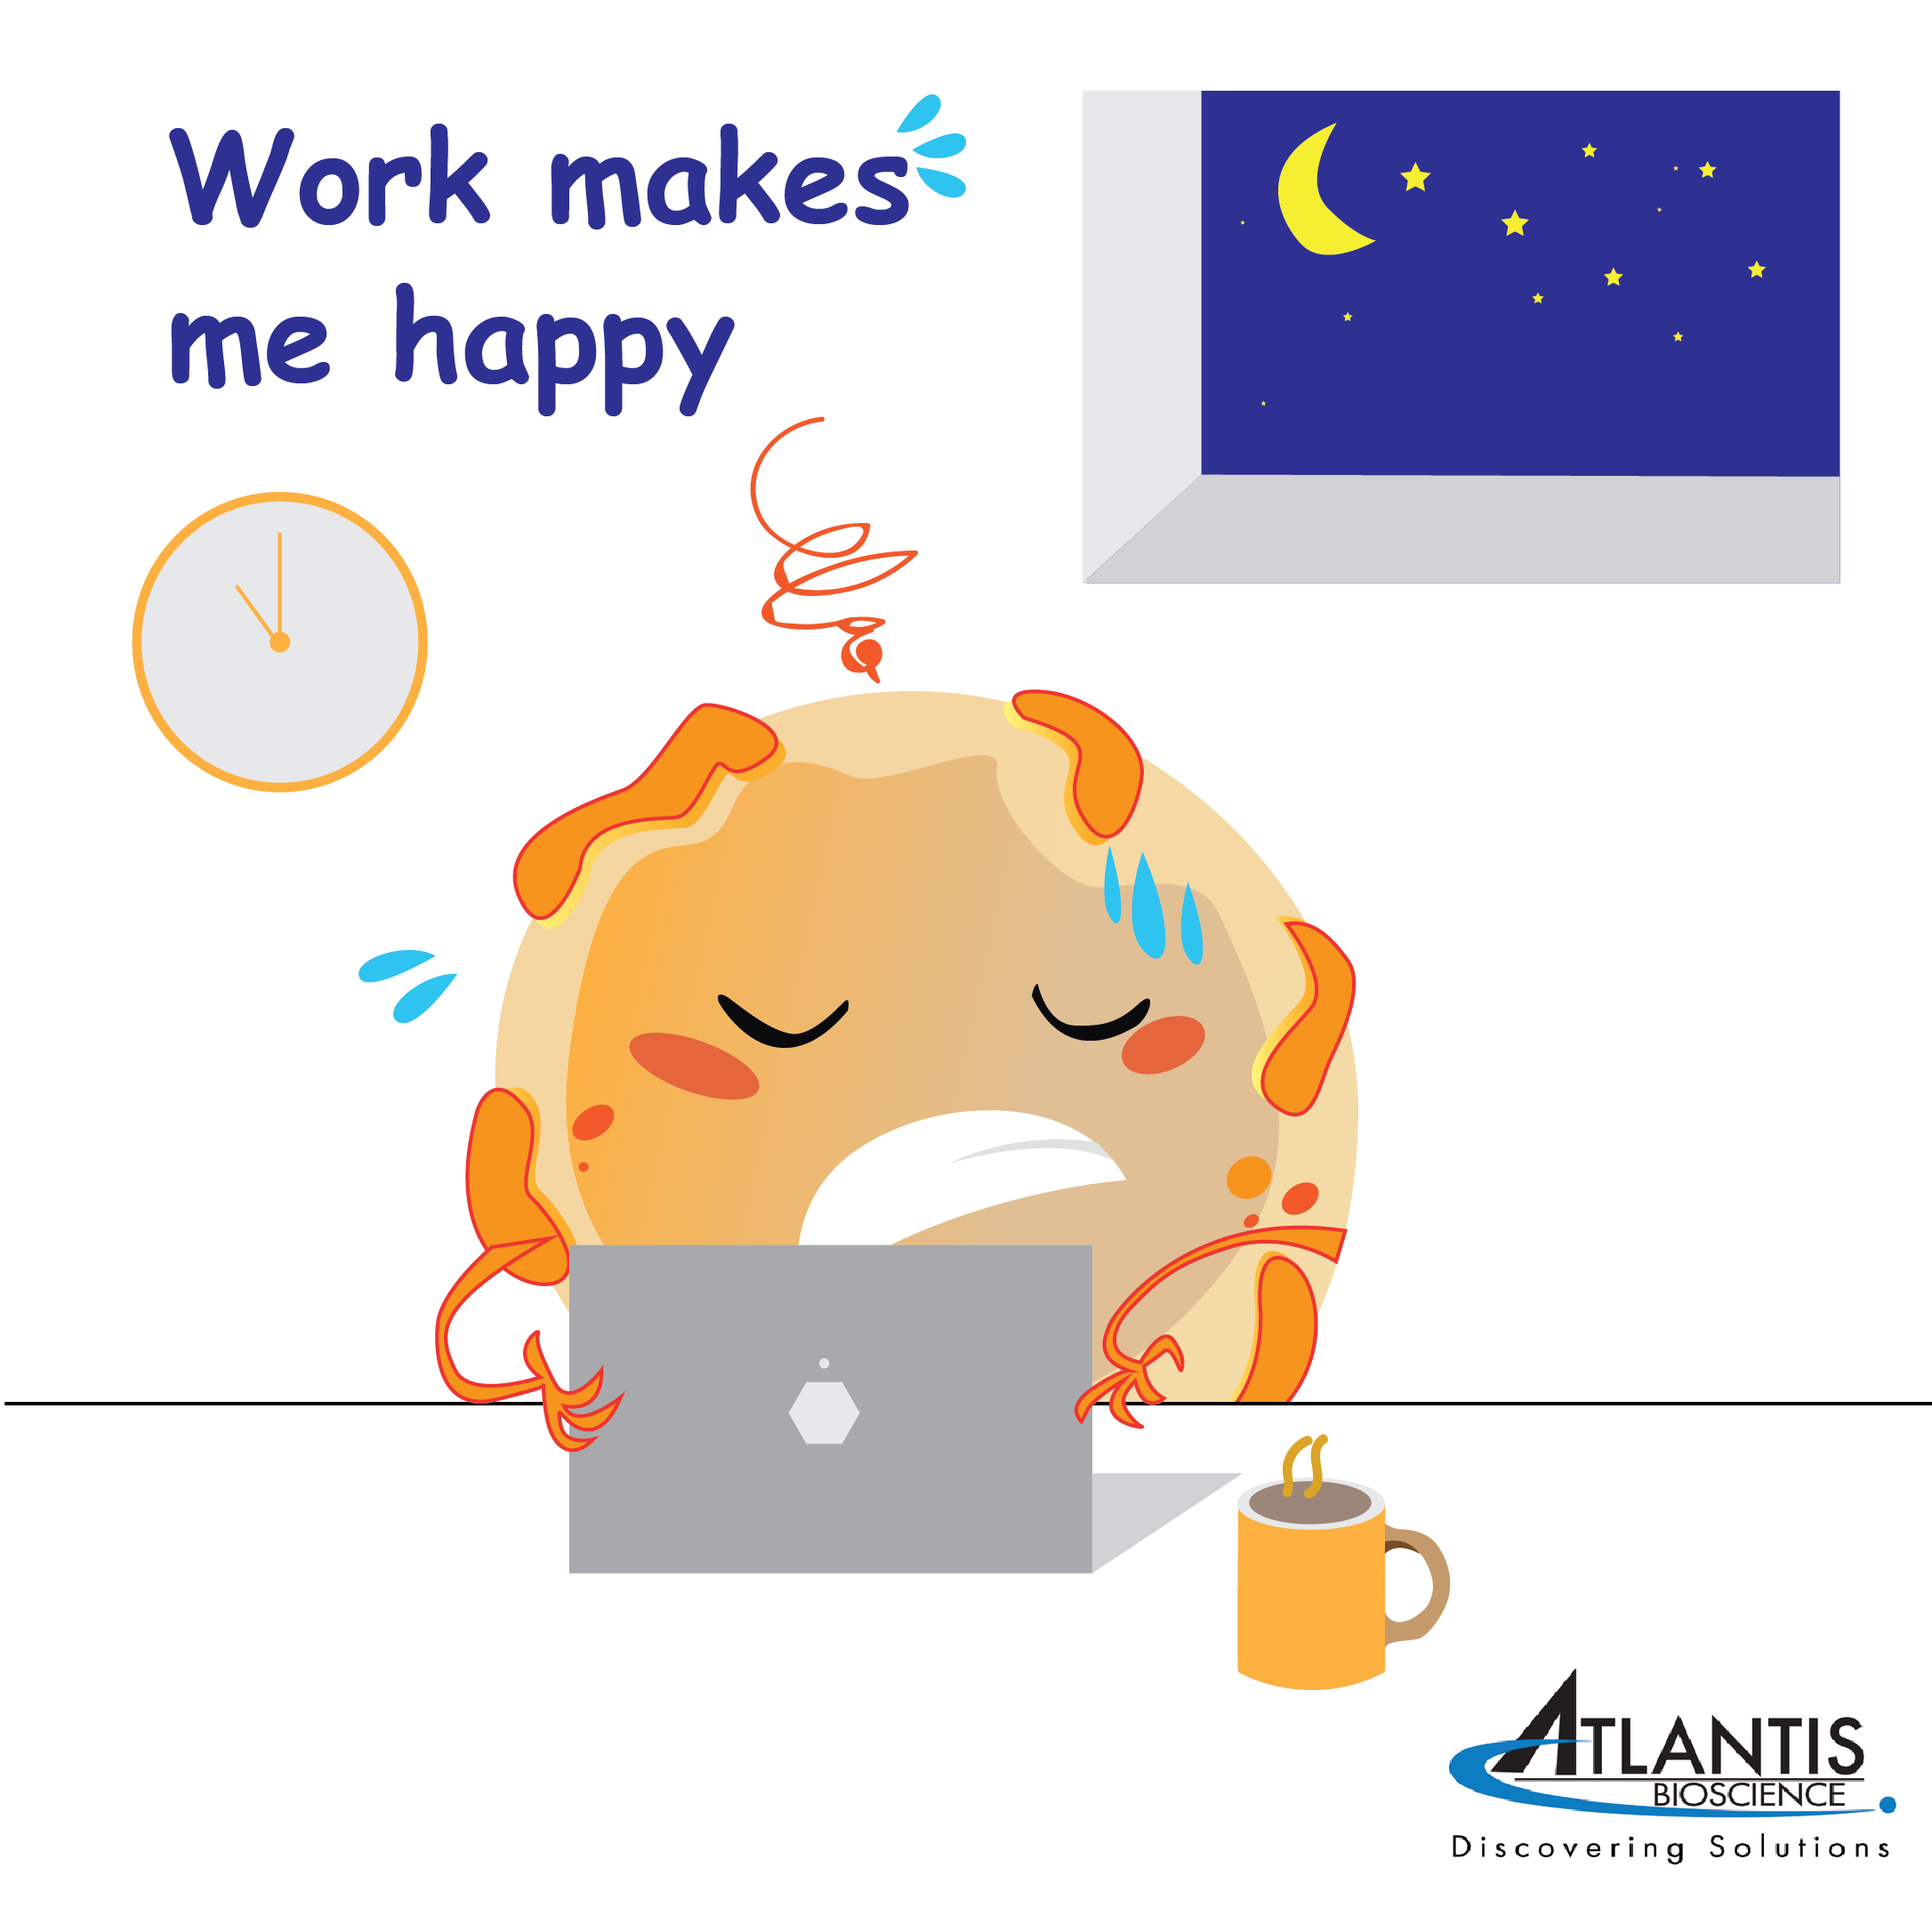 May'19-Free Atlantis Whatapp stickers for downloads